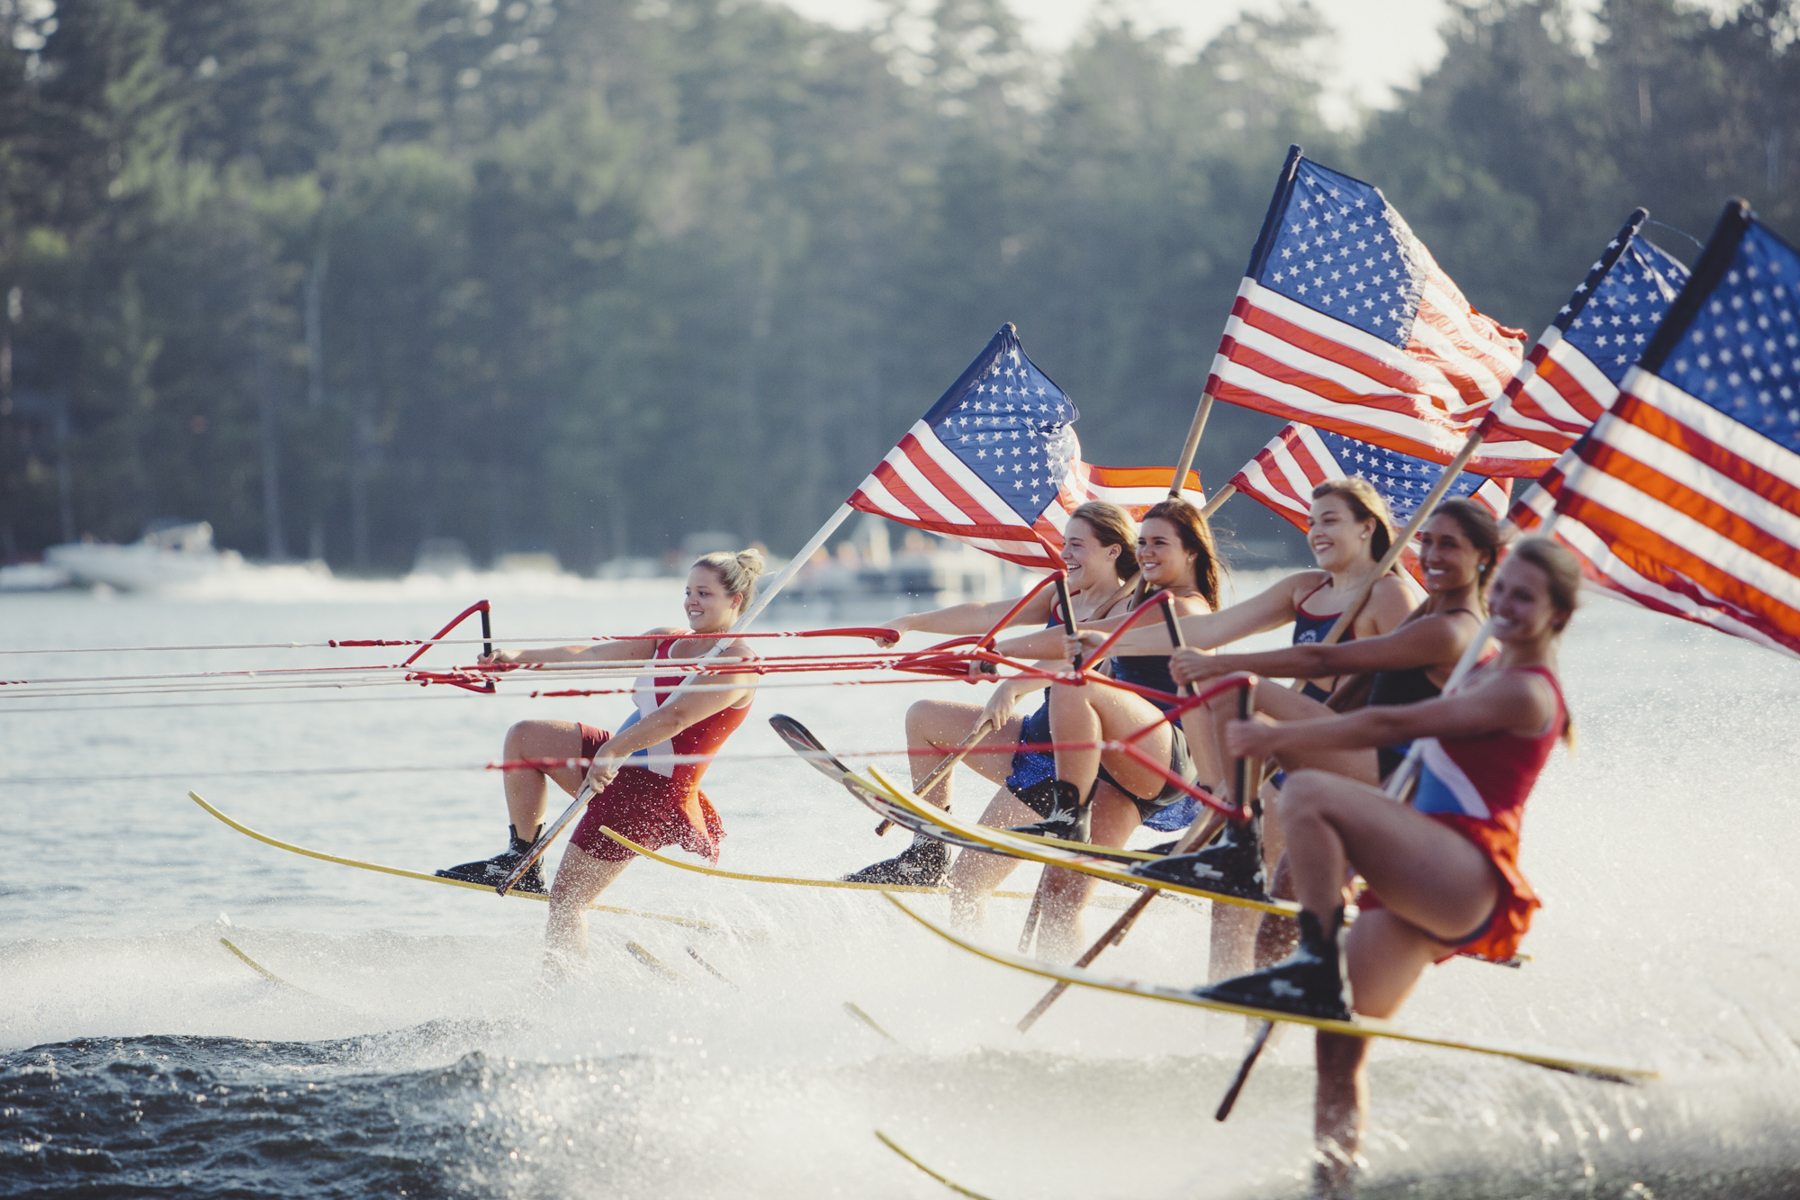 Young women Water Ski with American Flags